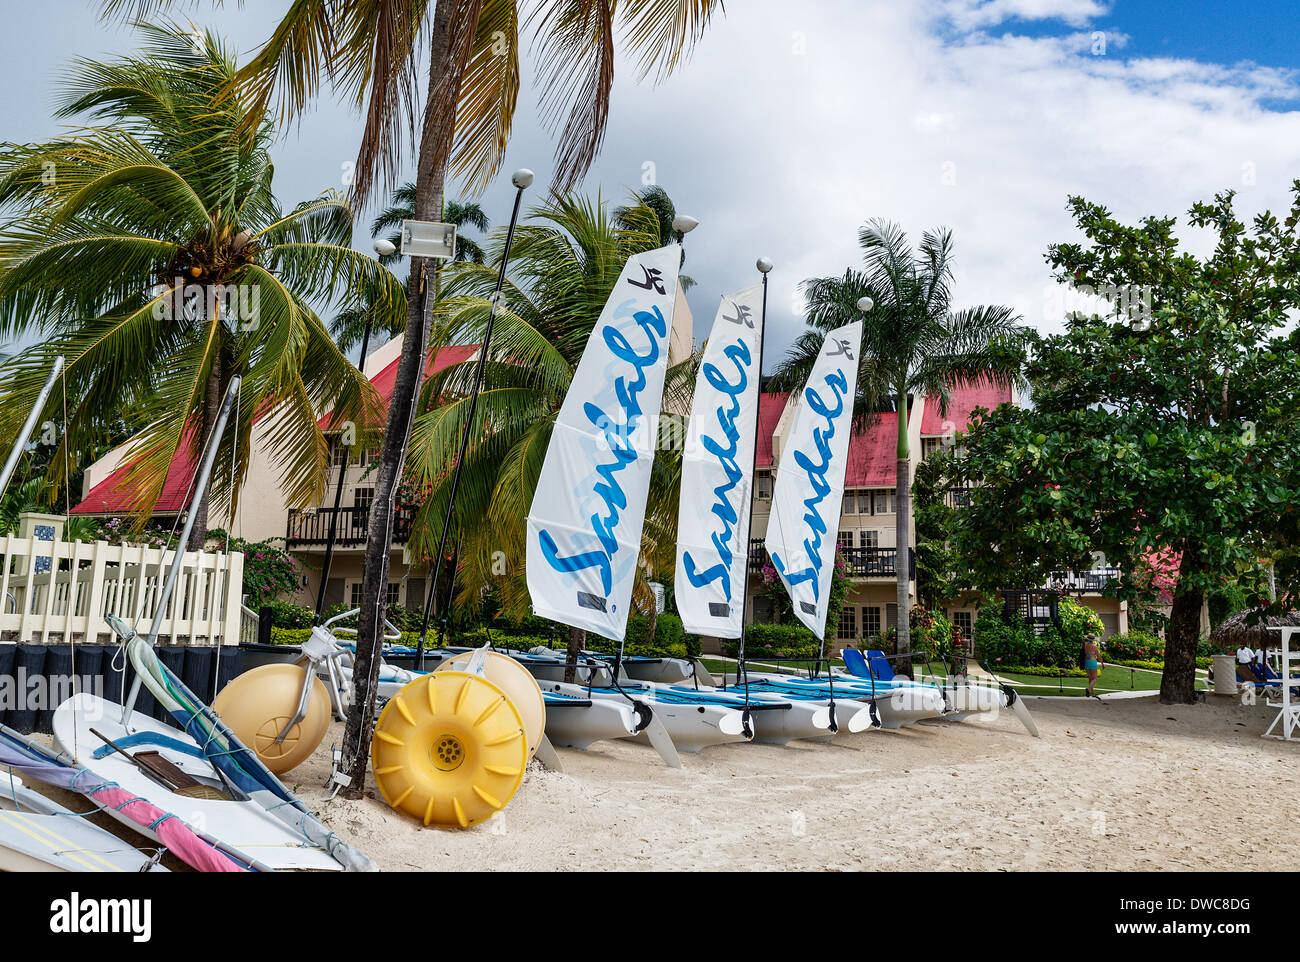 Sandals hotel and resort, Negril, Jamaica - Stock Image